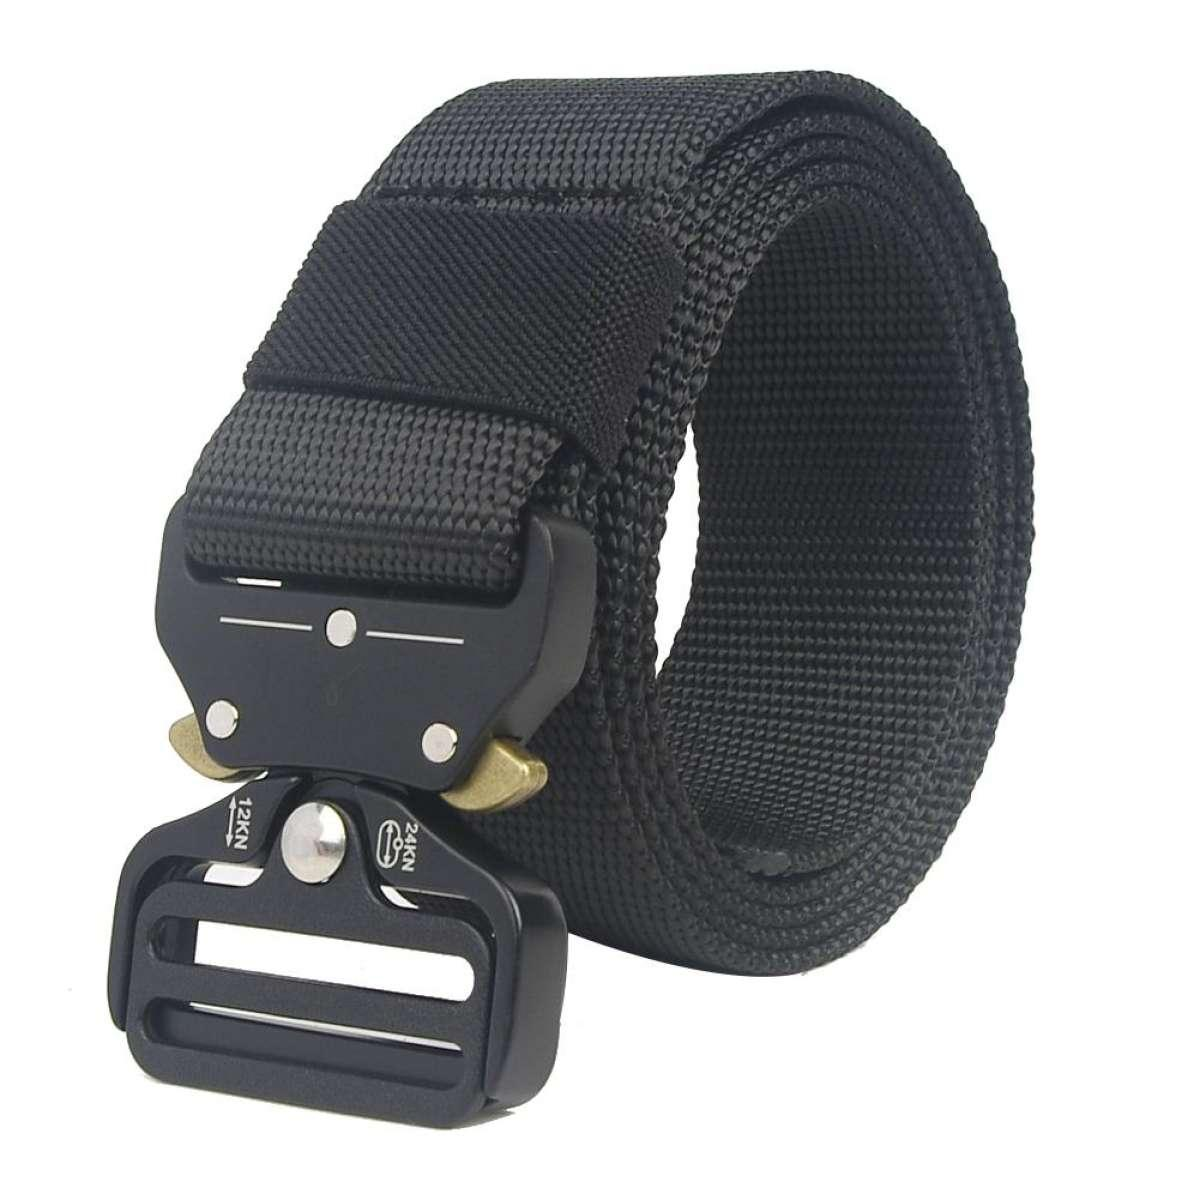 Ikat Pinggang / Gesper Fighting Belt Tactical Series Strap Nylon Head Stainless Steel Gabriel's Store